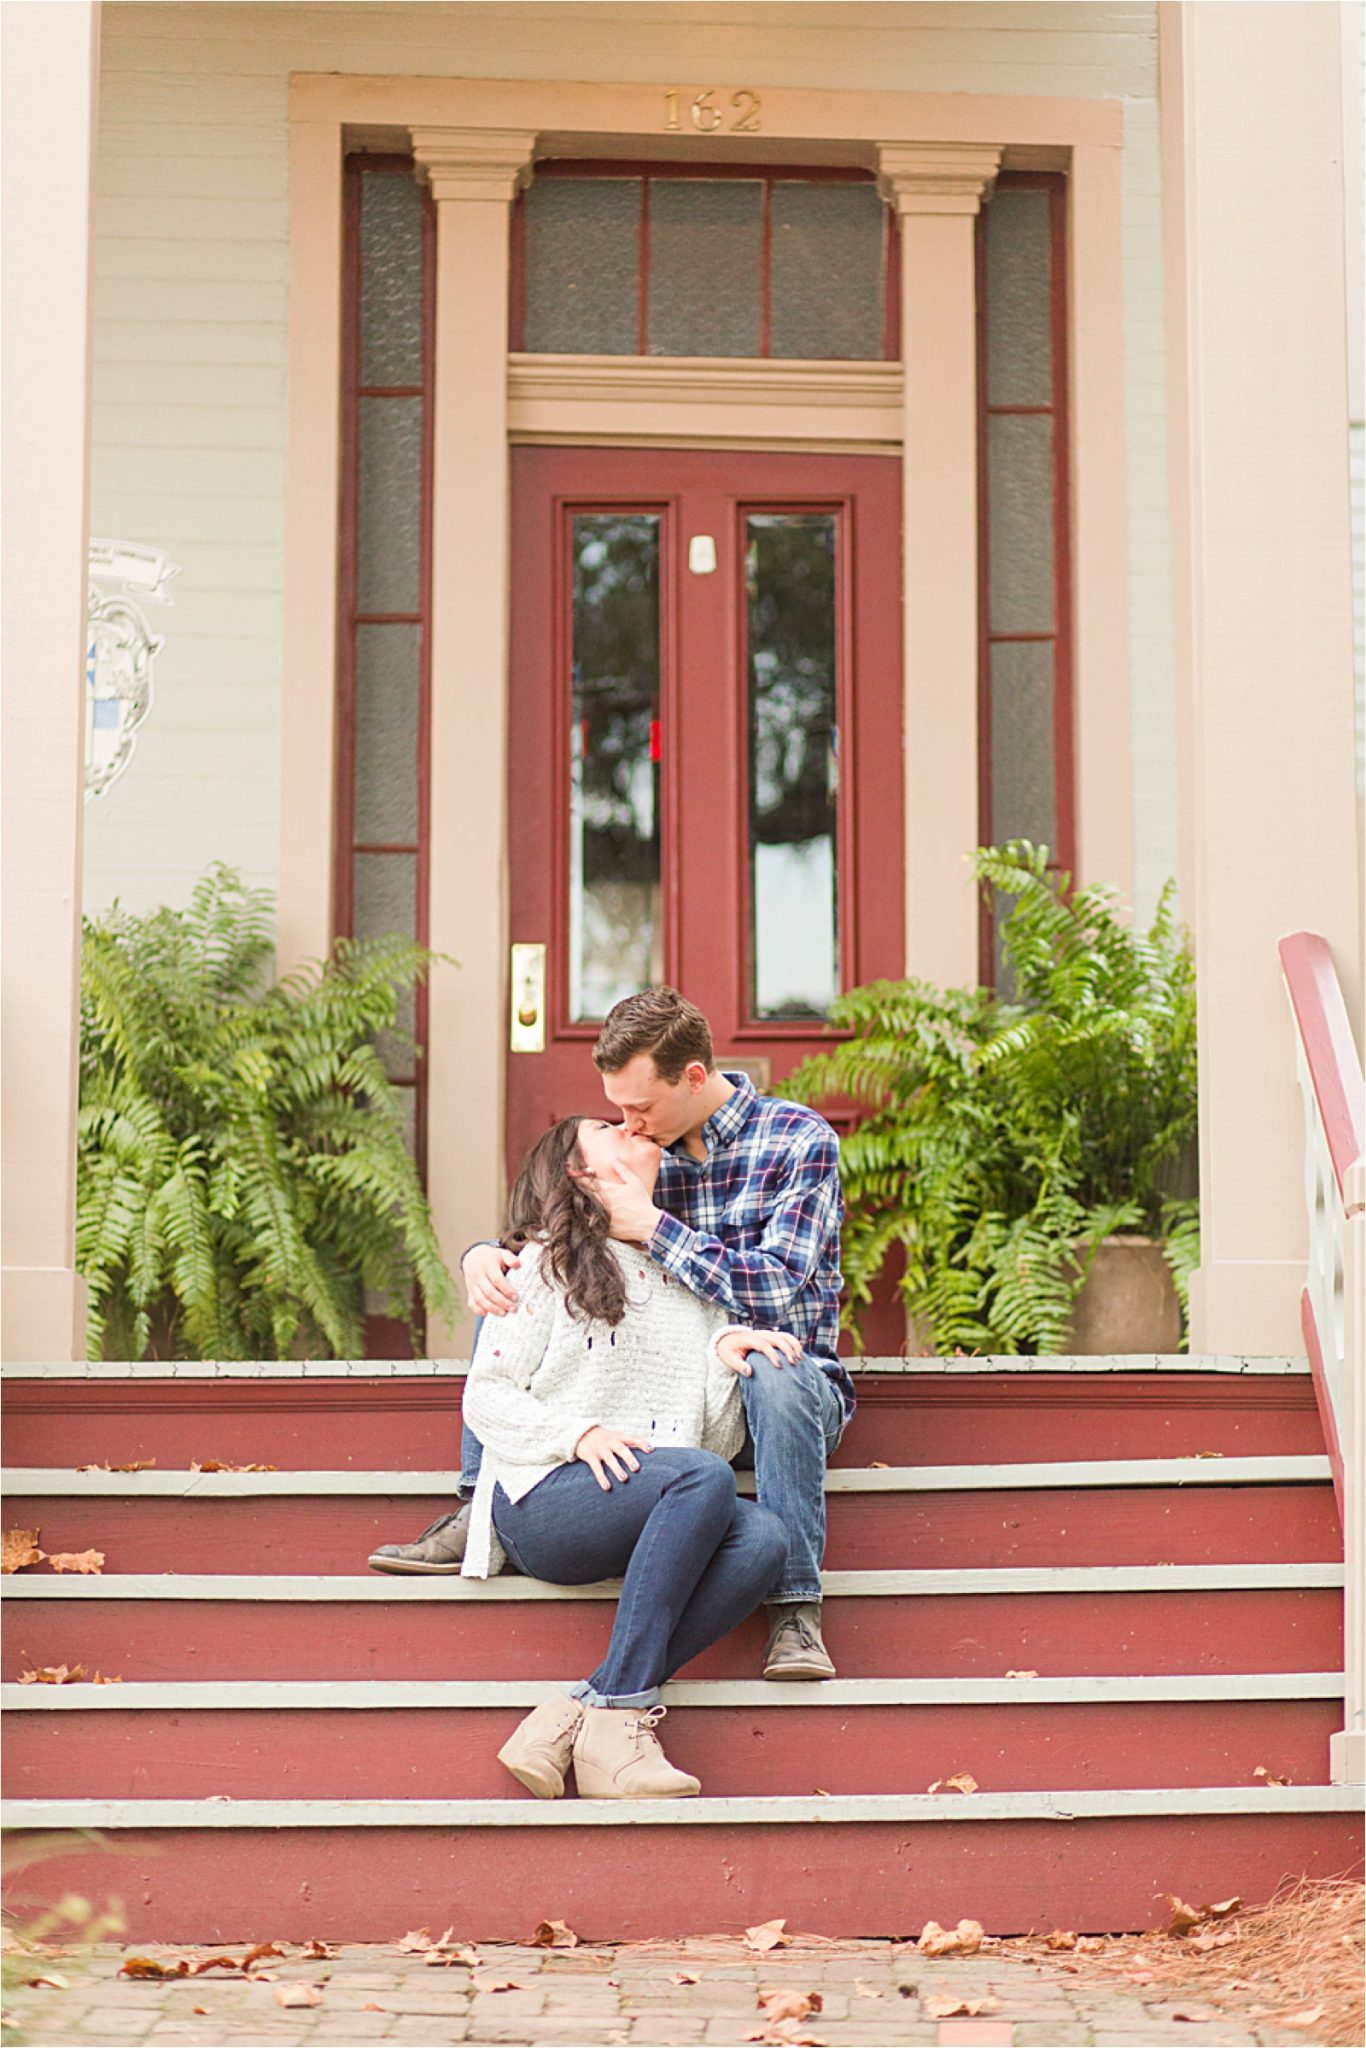 Mobile Alabama Photographer-Engagement Session-Josi + J.R.-Fall Engagement Session-Couple shoot-Forte Conde-Forte Conde Photoshoot